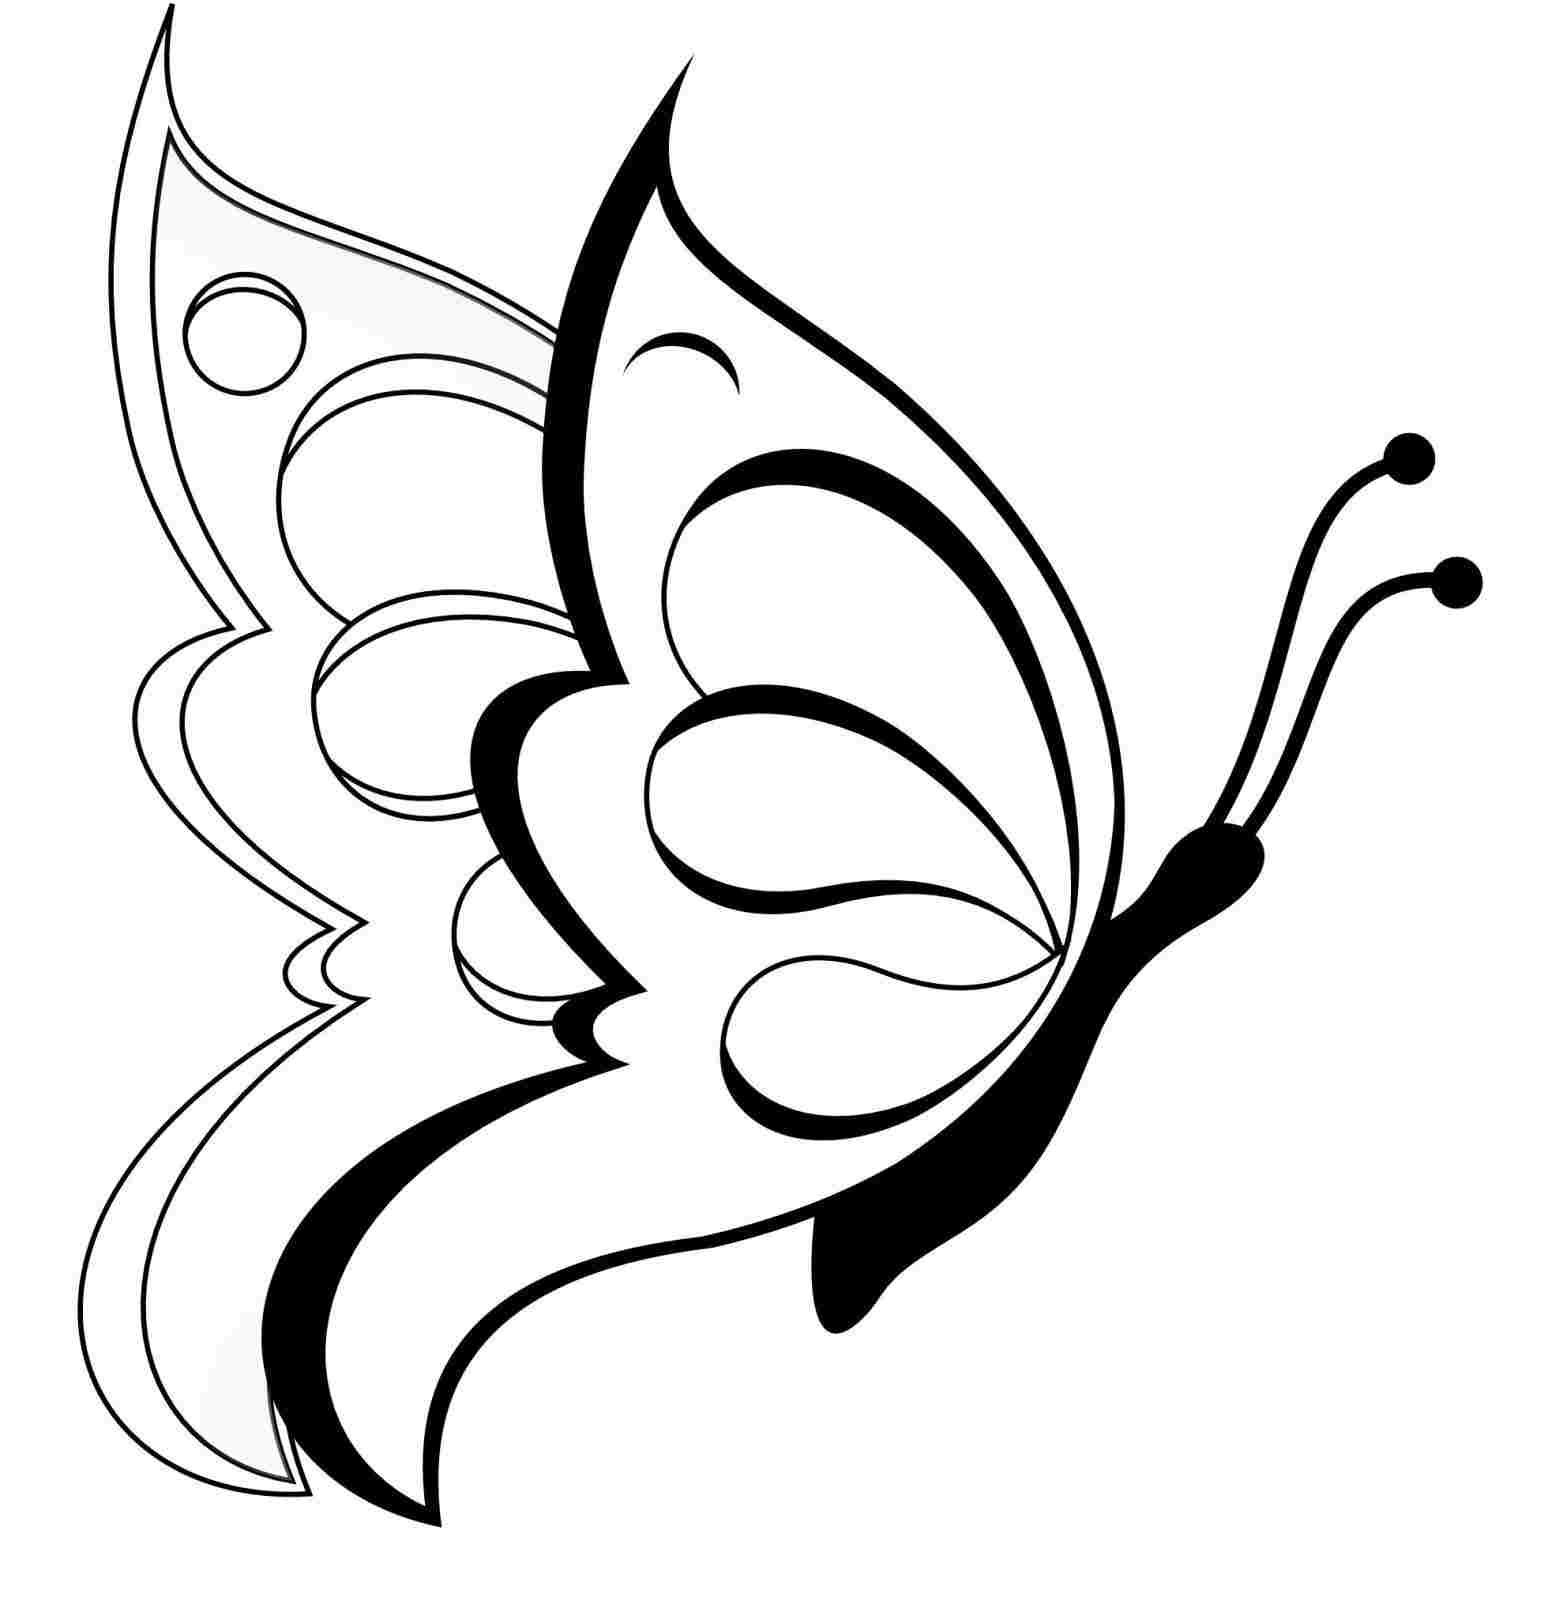 1563x1616 Free Easy Butterfly Line Drawing Printable Butterfly Coloring